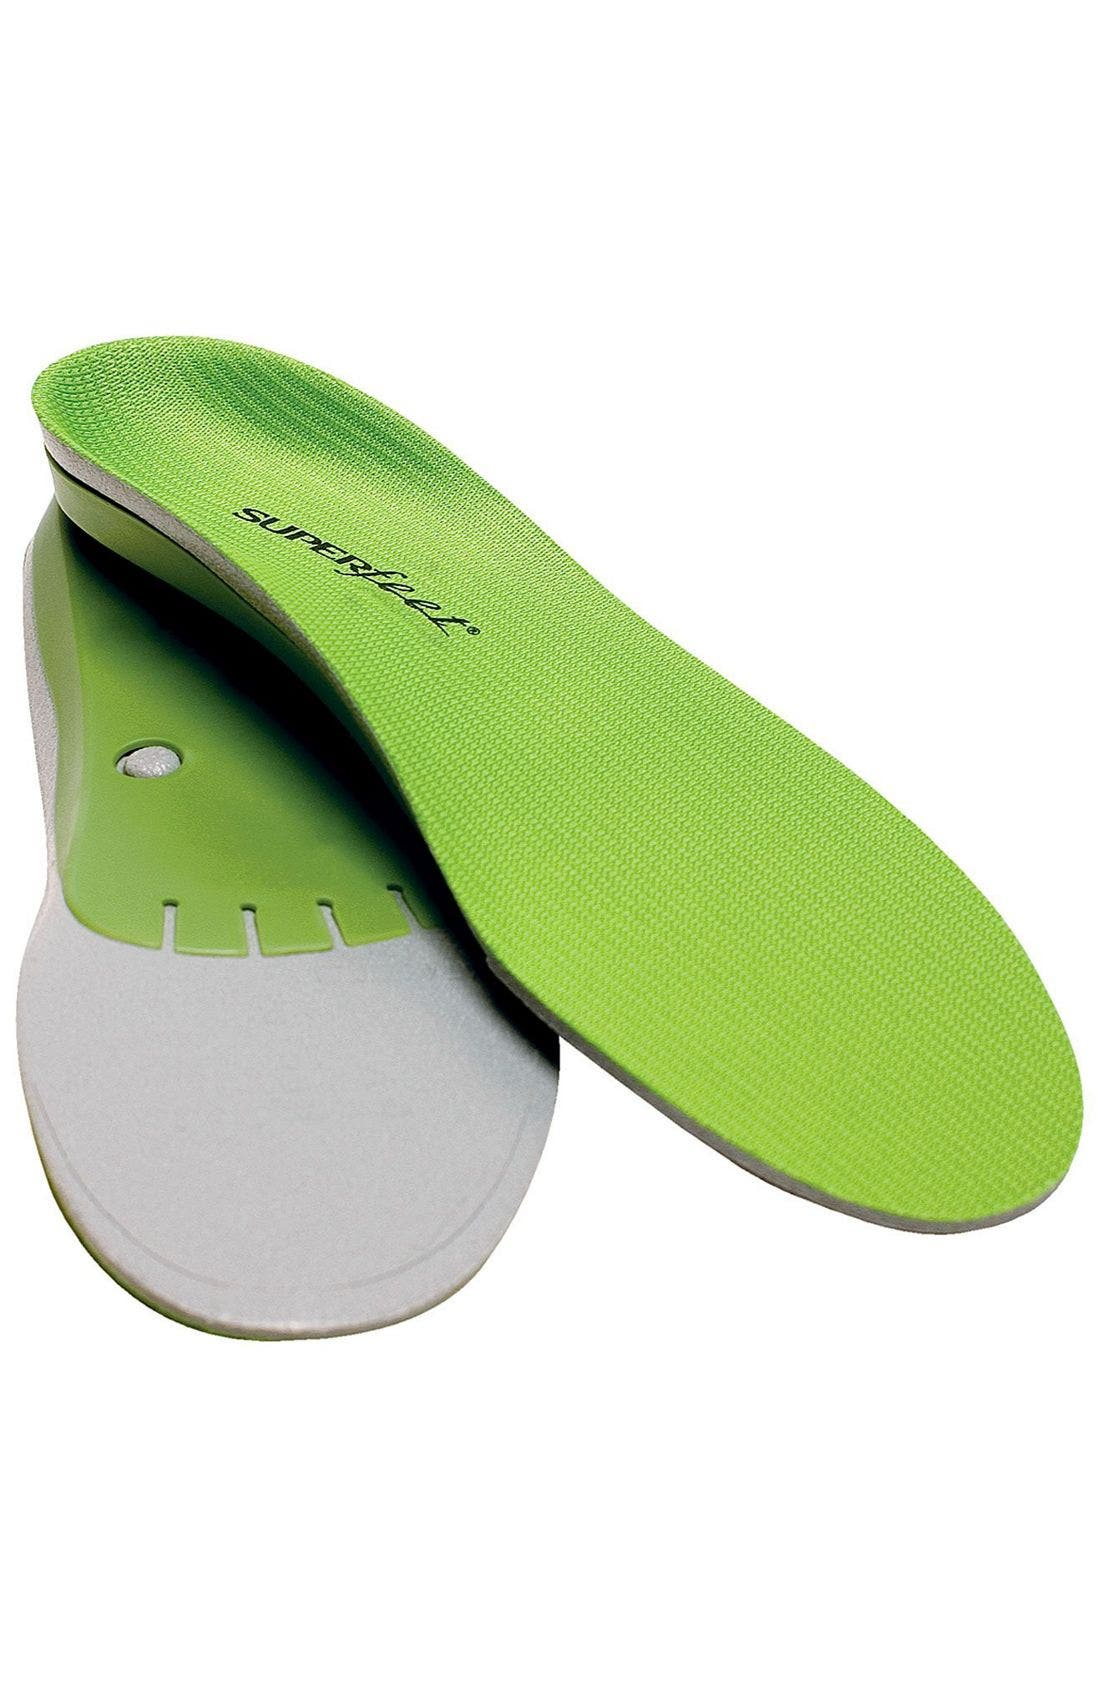 'Performance Green' Insoles,                             Main thumbnail 1, color,                             Green